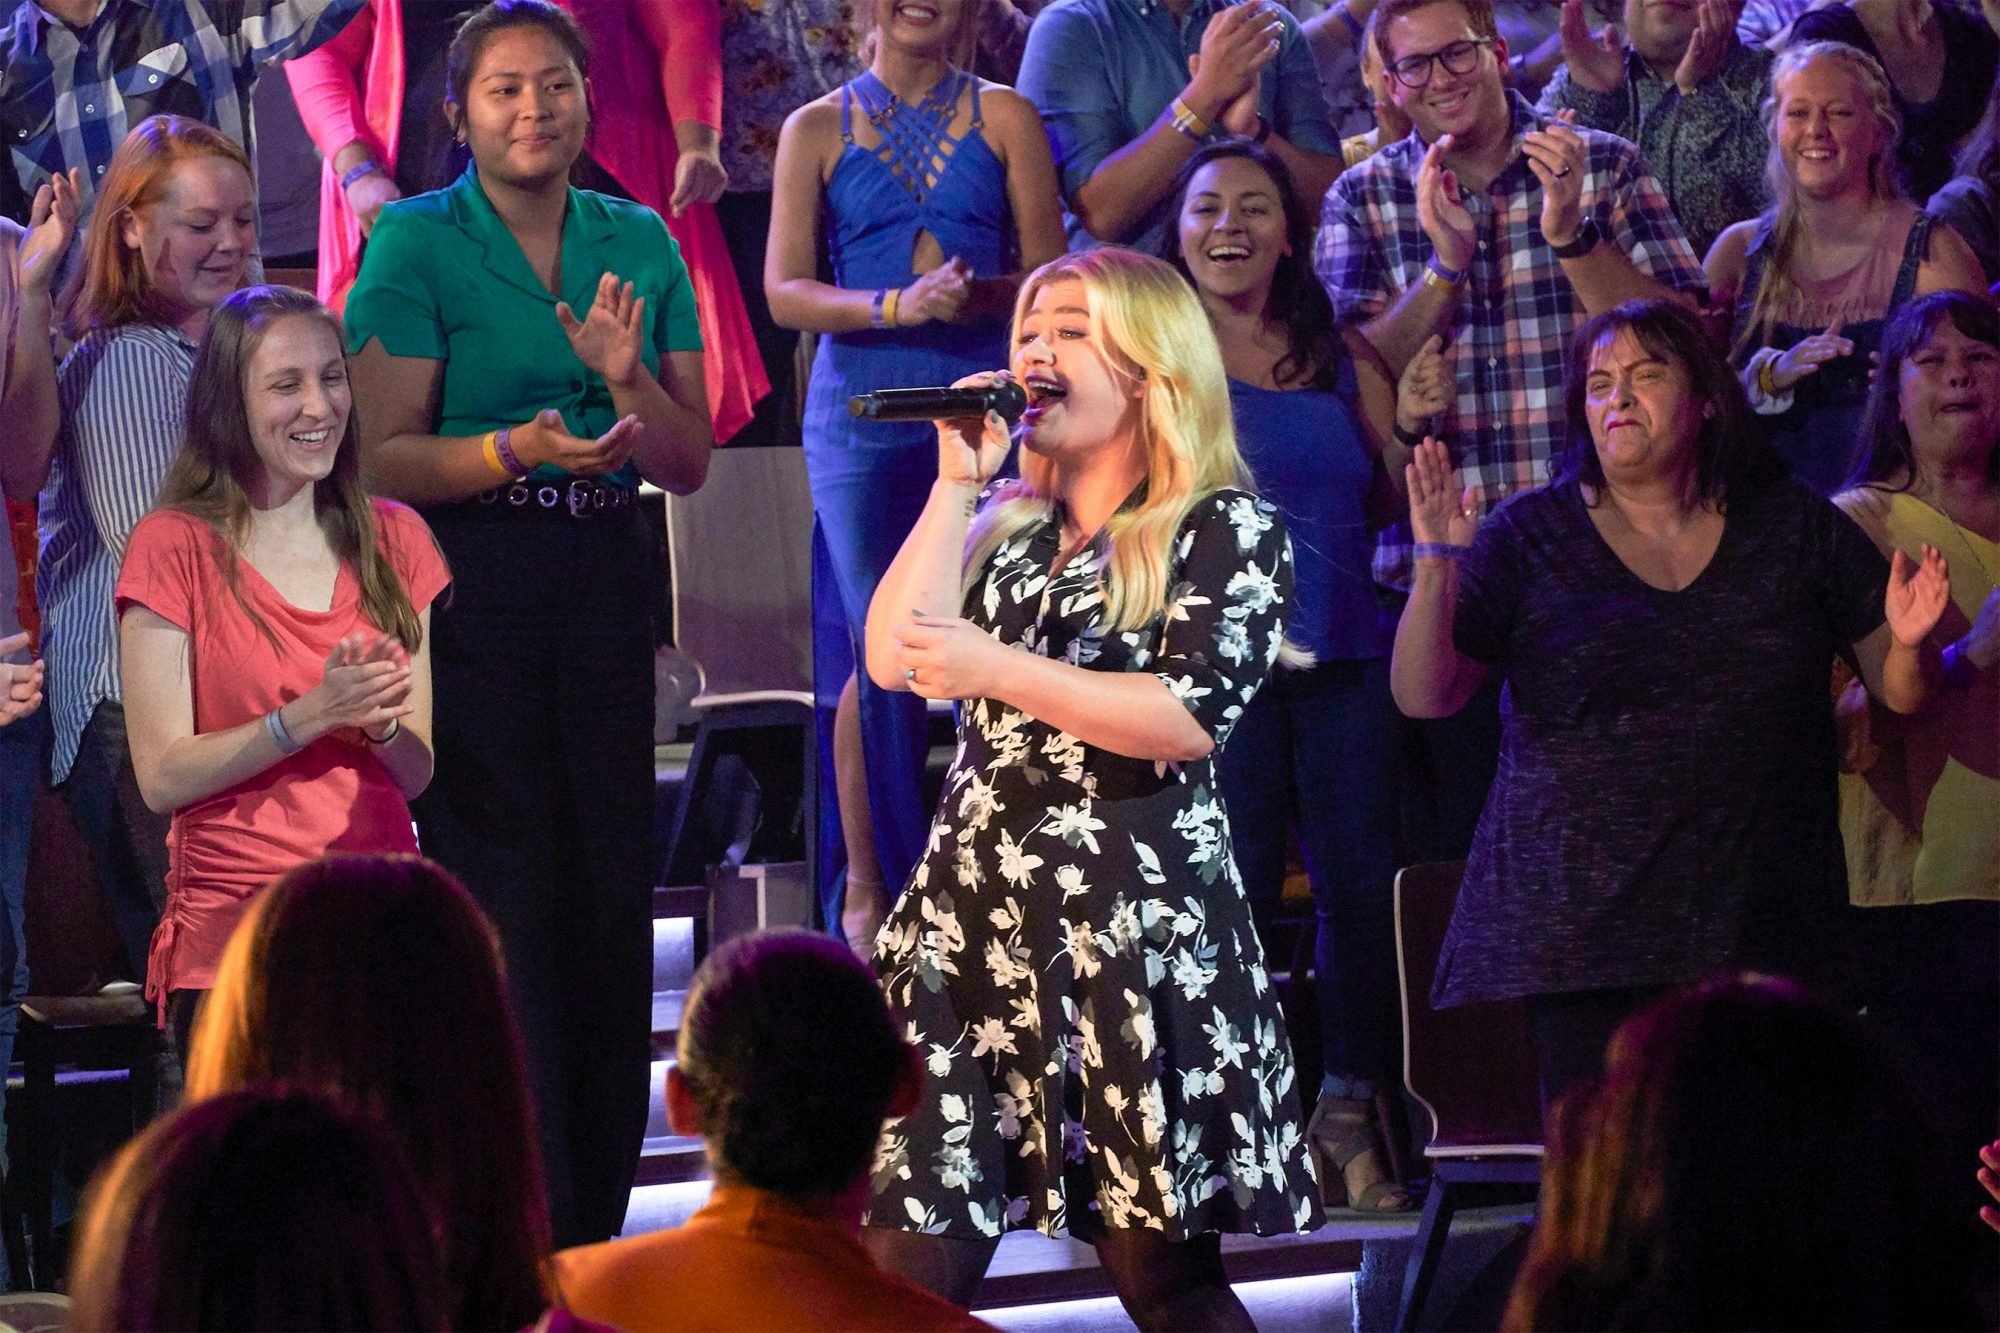 THE KELLY CLARKSON SHOW -- Episode 3016 -- Pictured: Kelly Clarkson -- (Photo by: Adam Torgerson/NBCUniversal)